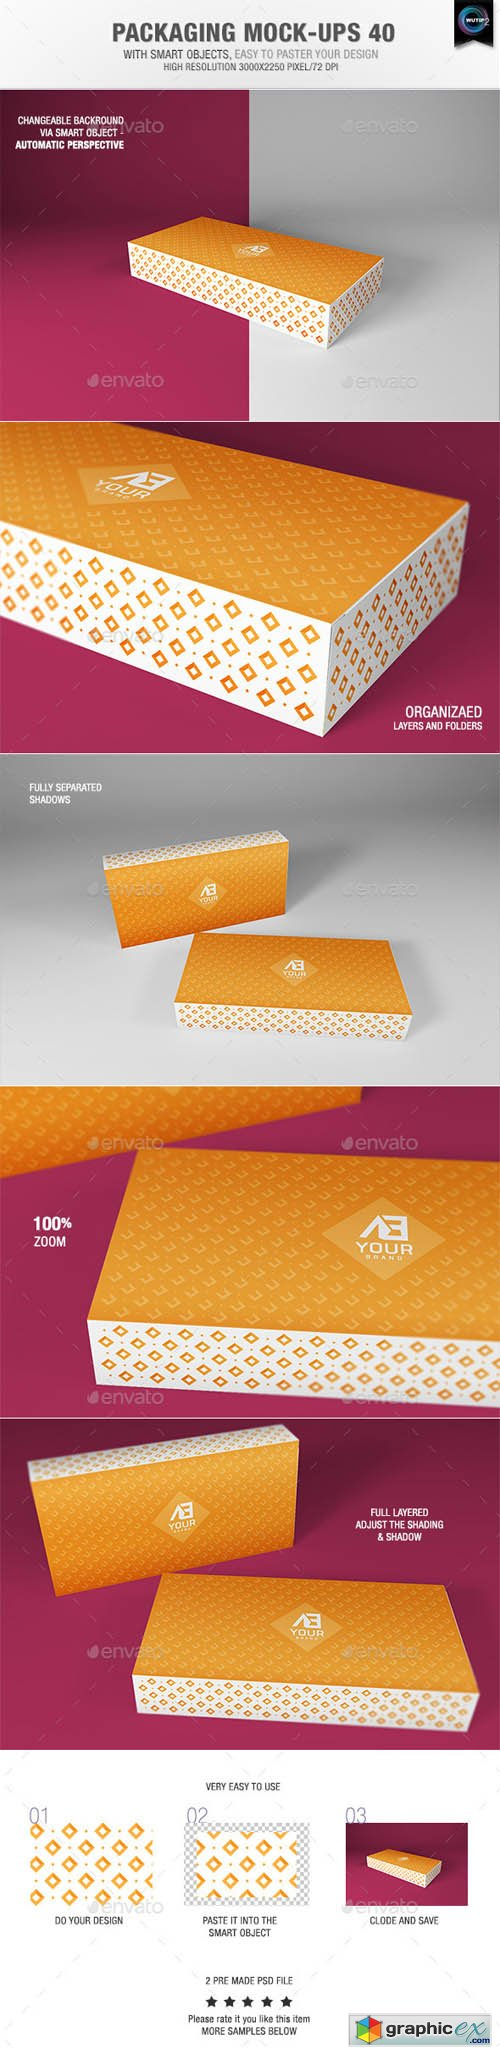 Packaging Mock-ups 40